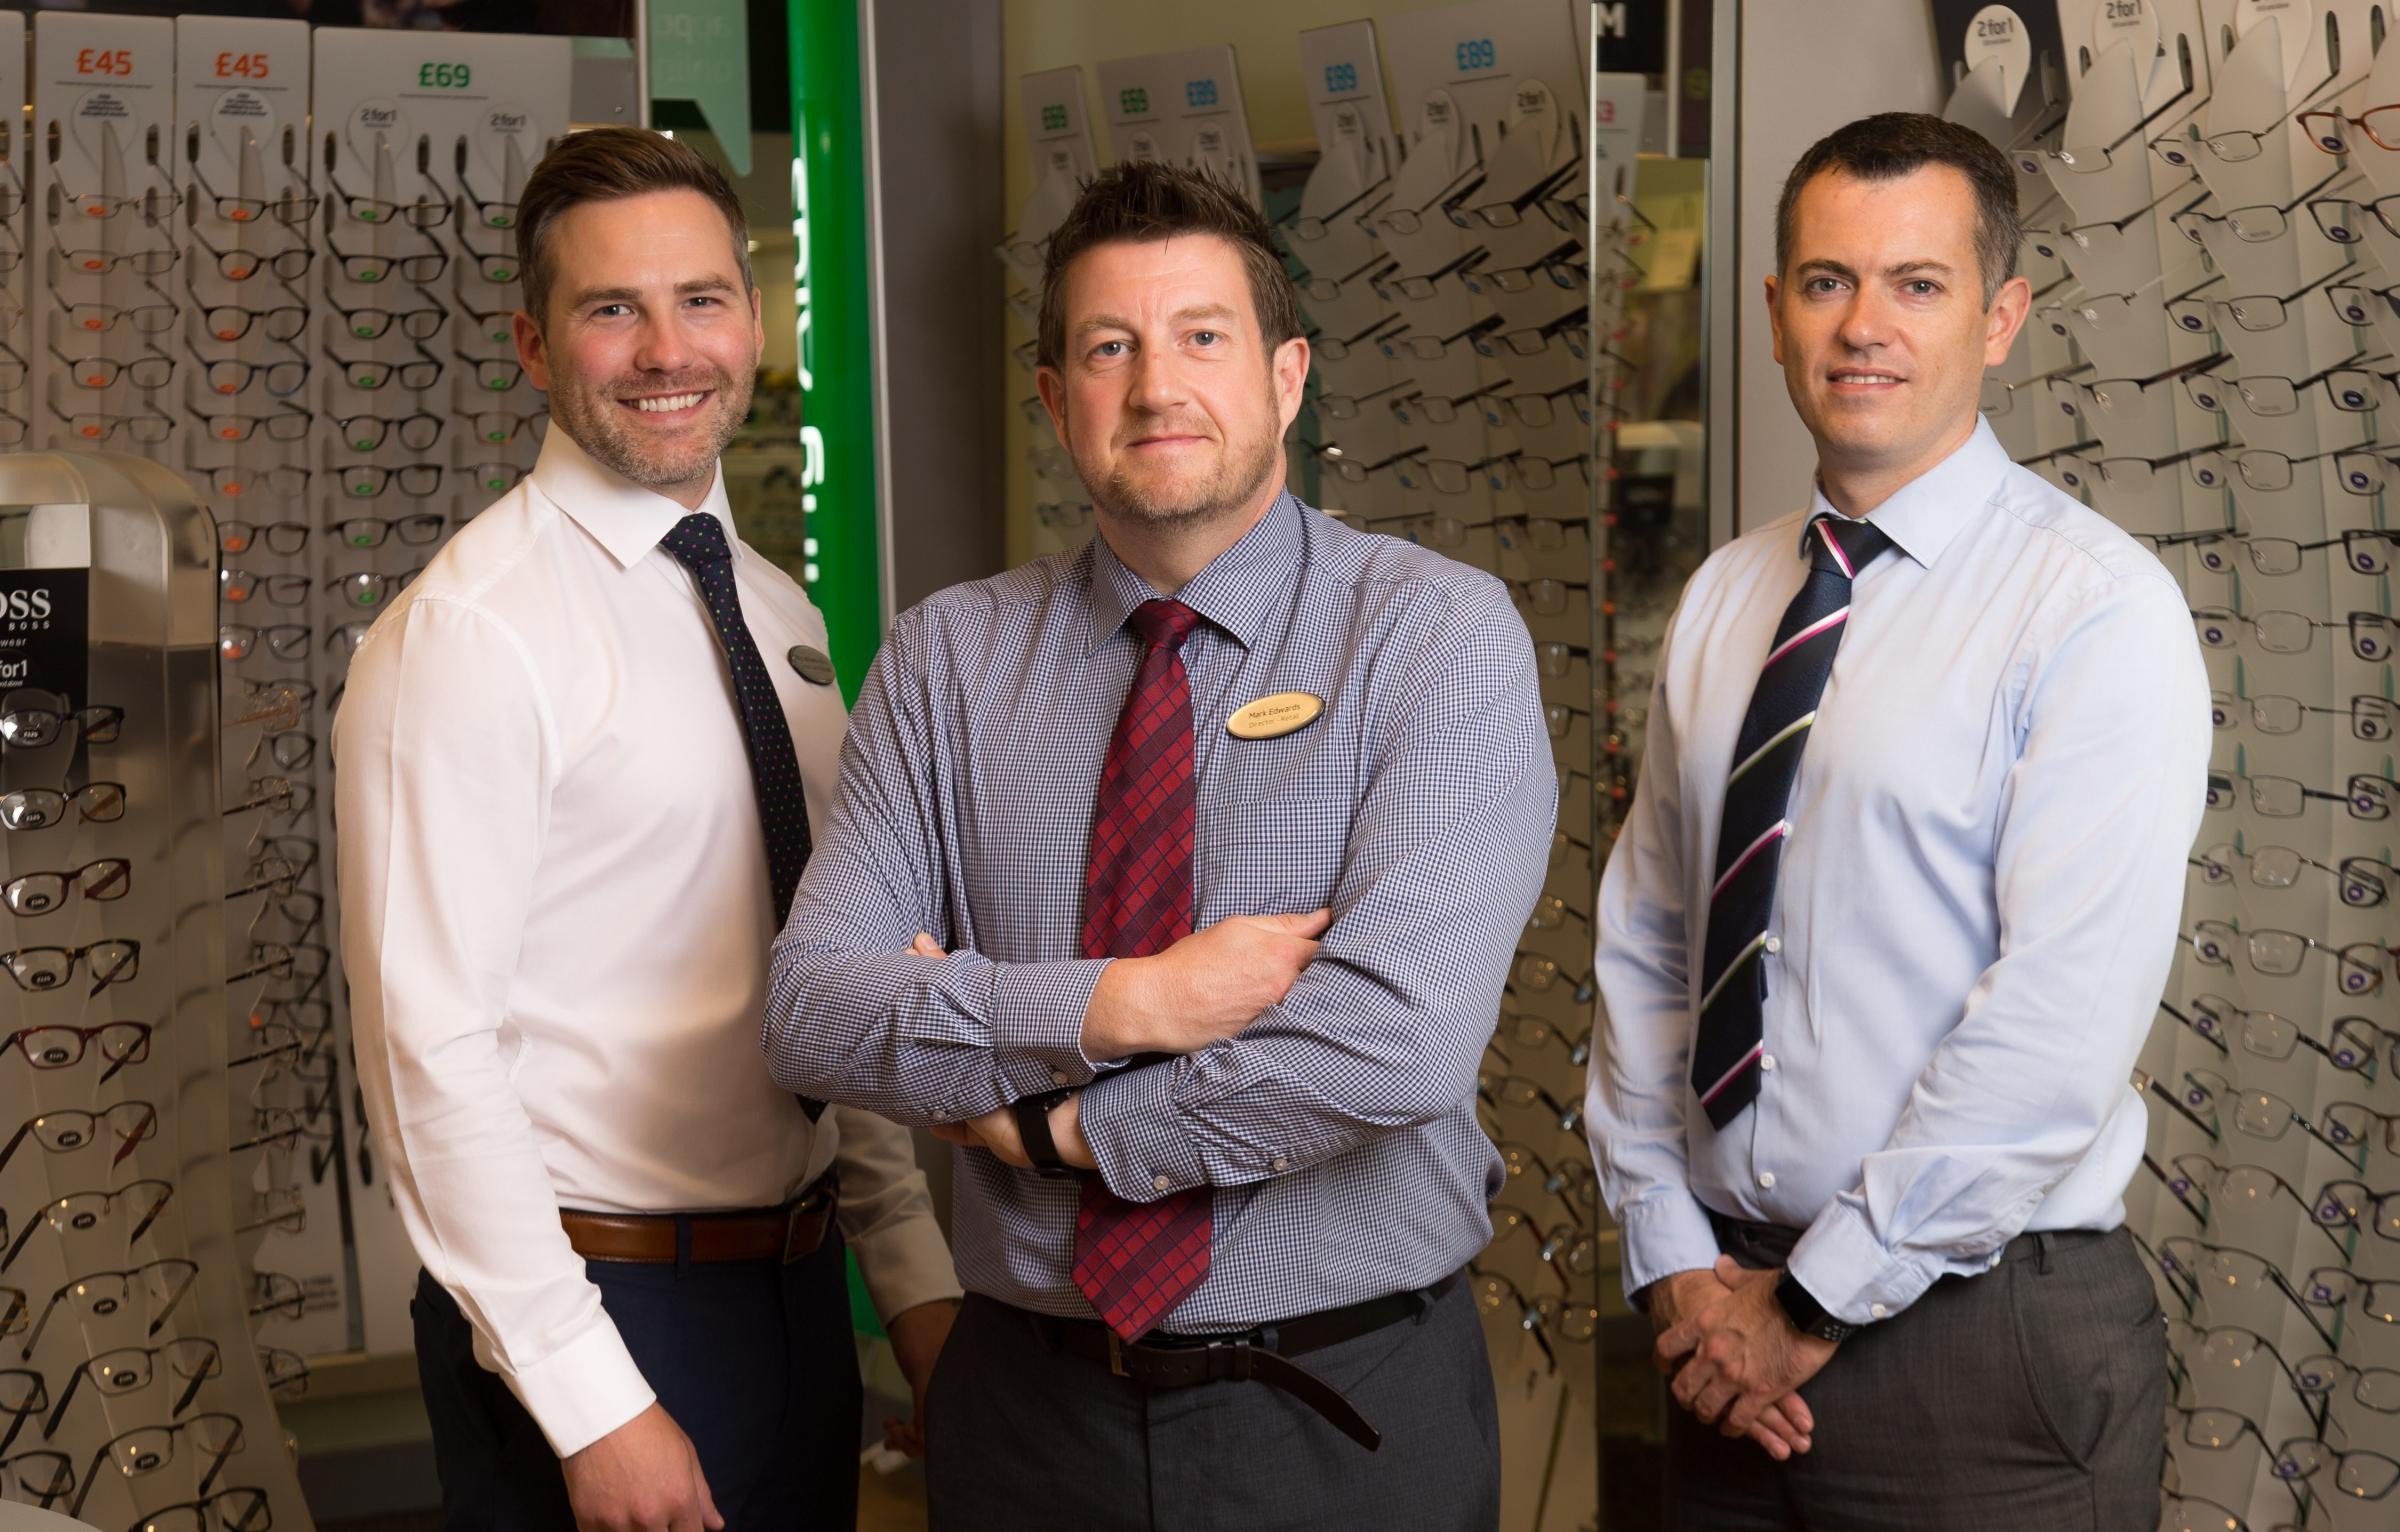 Specsavers Cwmbran directors, left to right, Rhys Williams, Mark Edwards and Gareth Ward